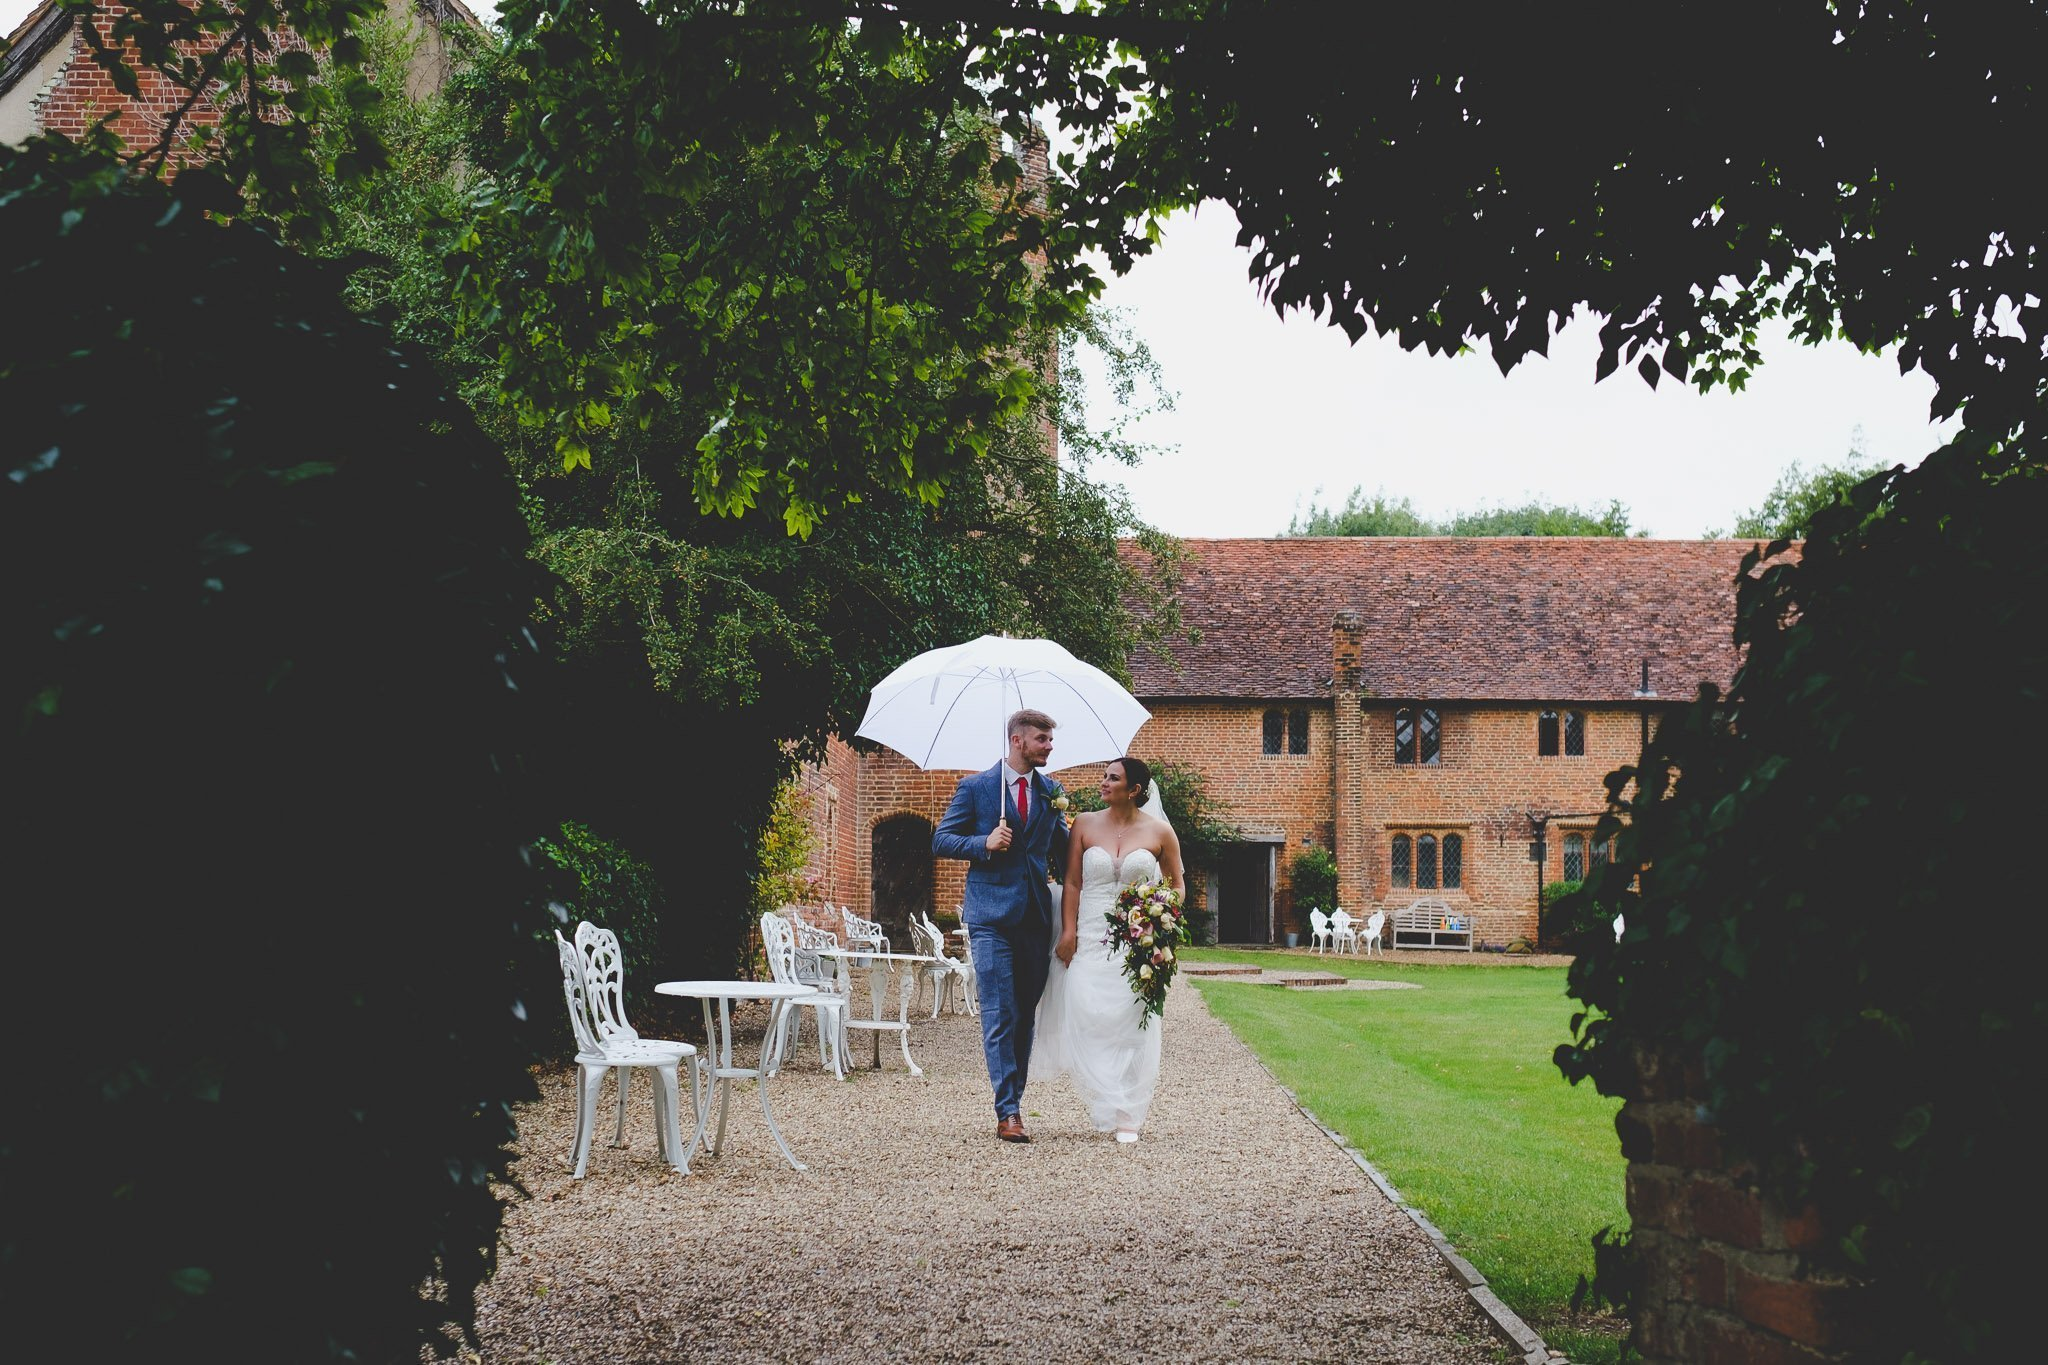 Portrait of a bride & groom walking under an umbrella in the gardens of Leez Priory Chelmsford. Photography by thatthingyoupluck.